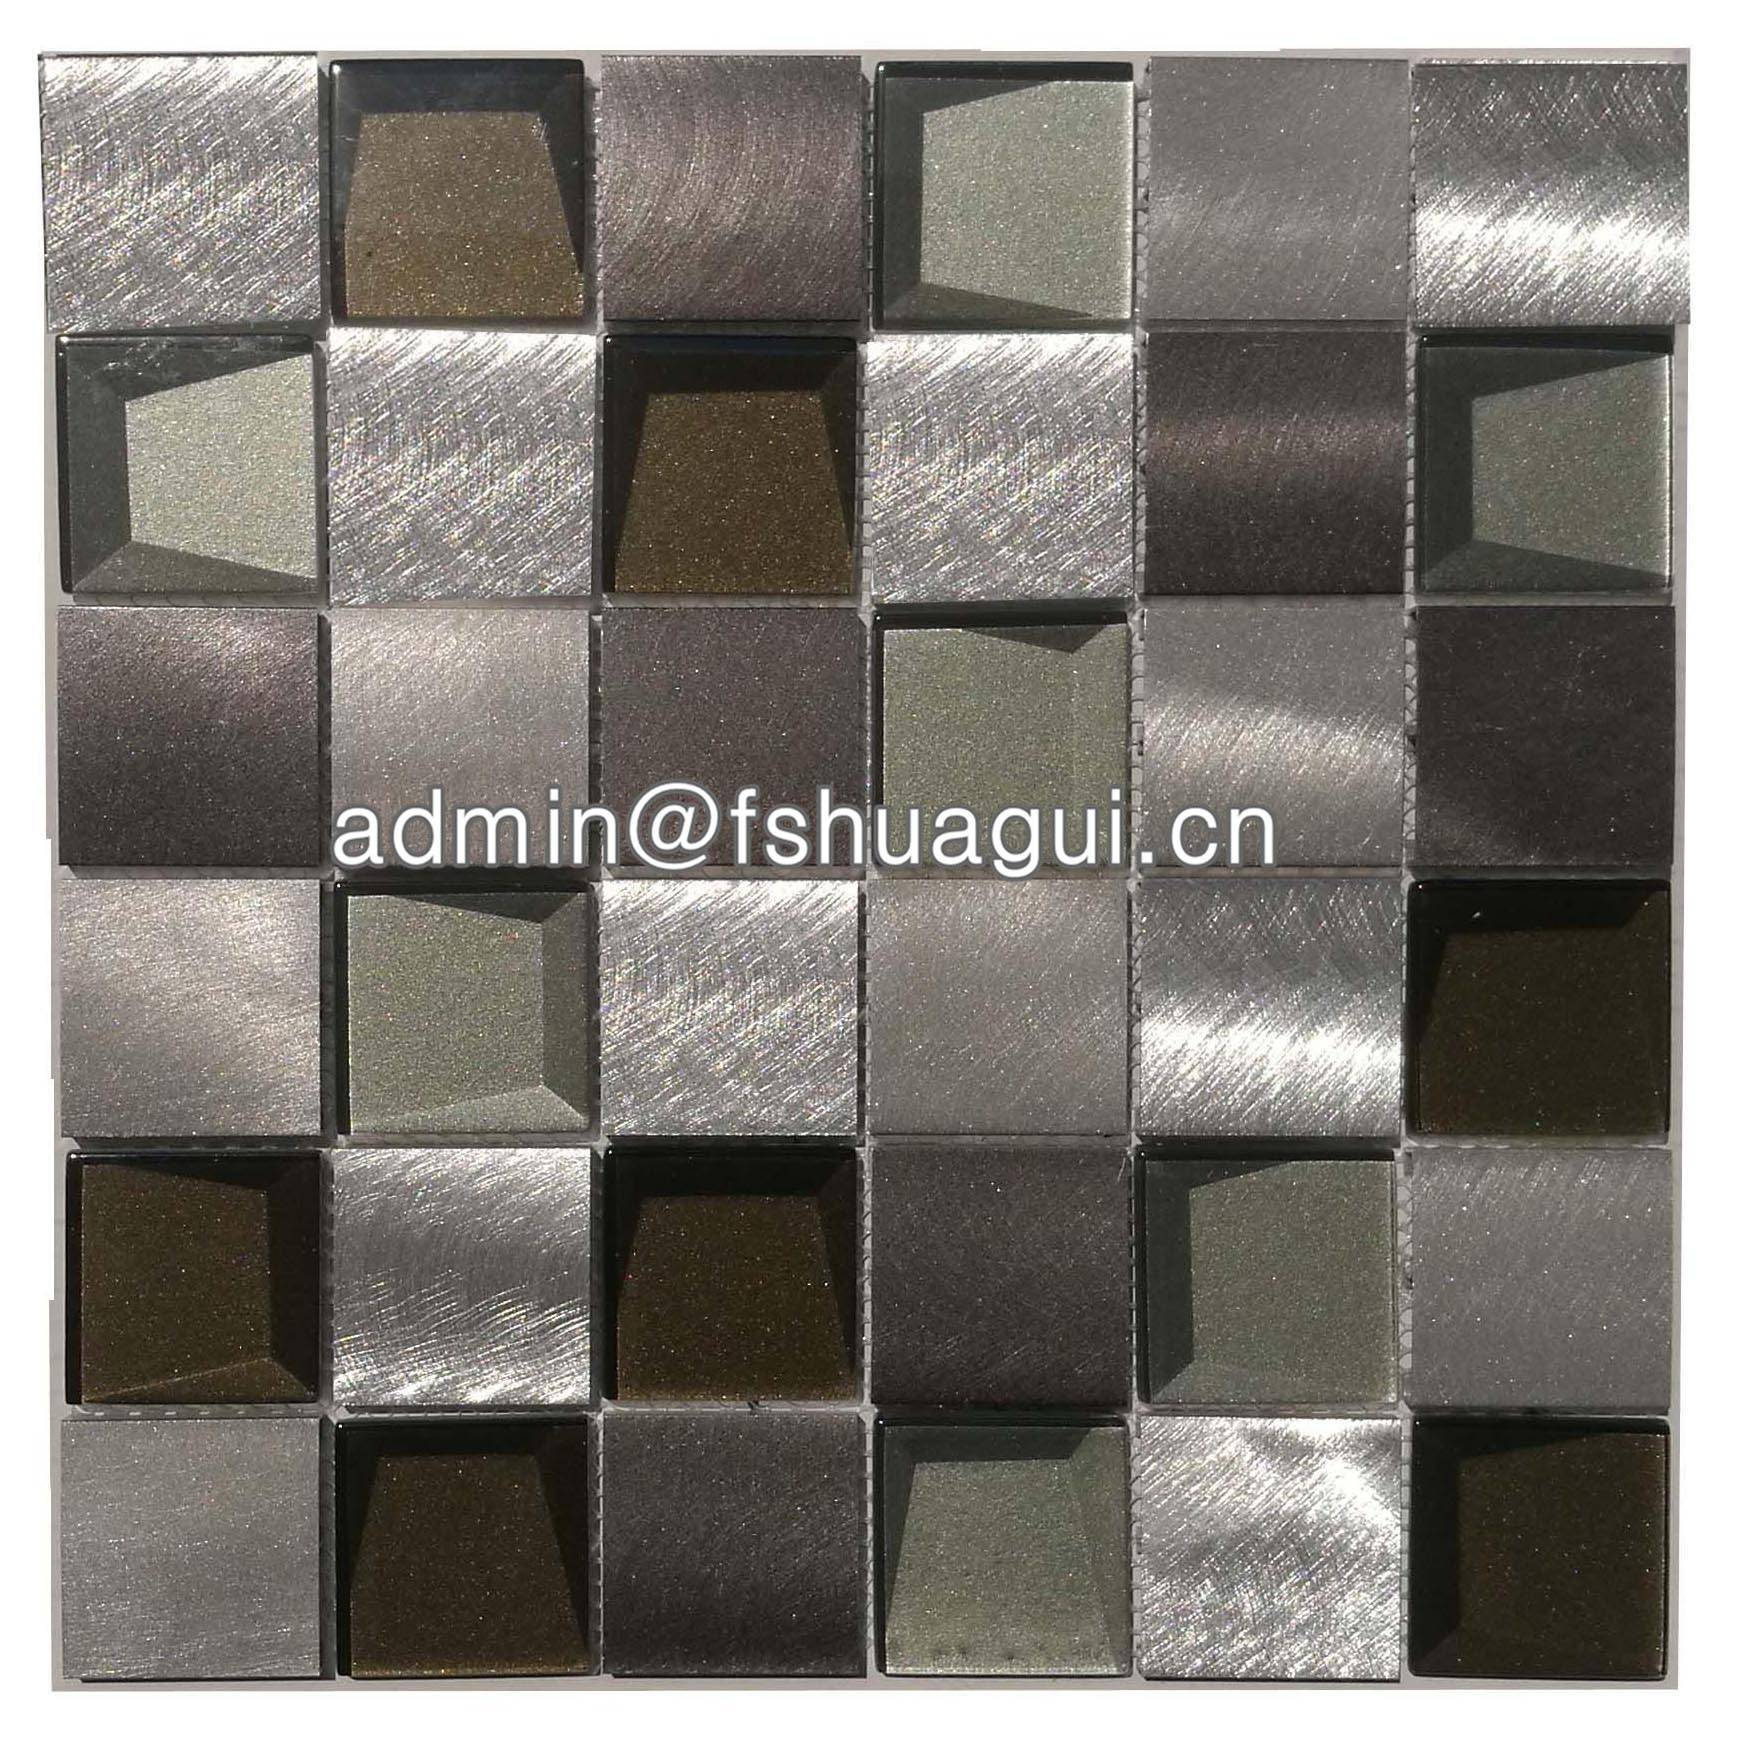 Huagui Cream glass mix mother of pearl shell mosaic bathroom tile  HG-BF004 SHELL MOSAIC TILE image1